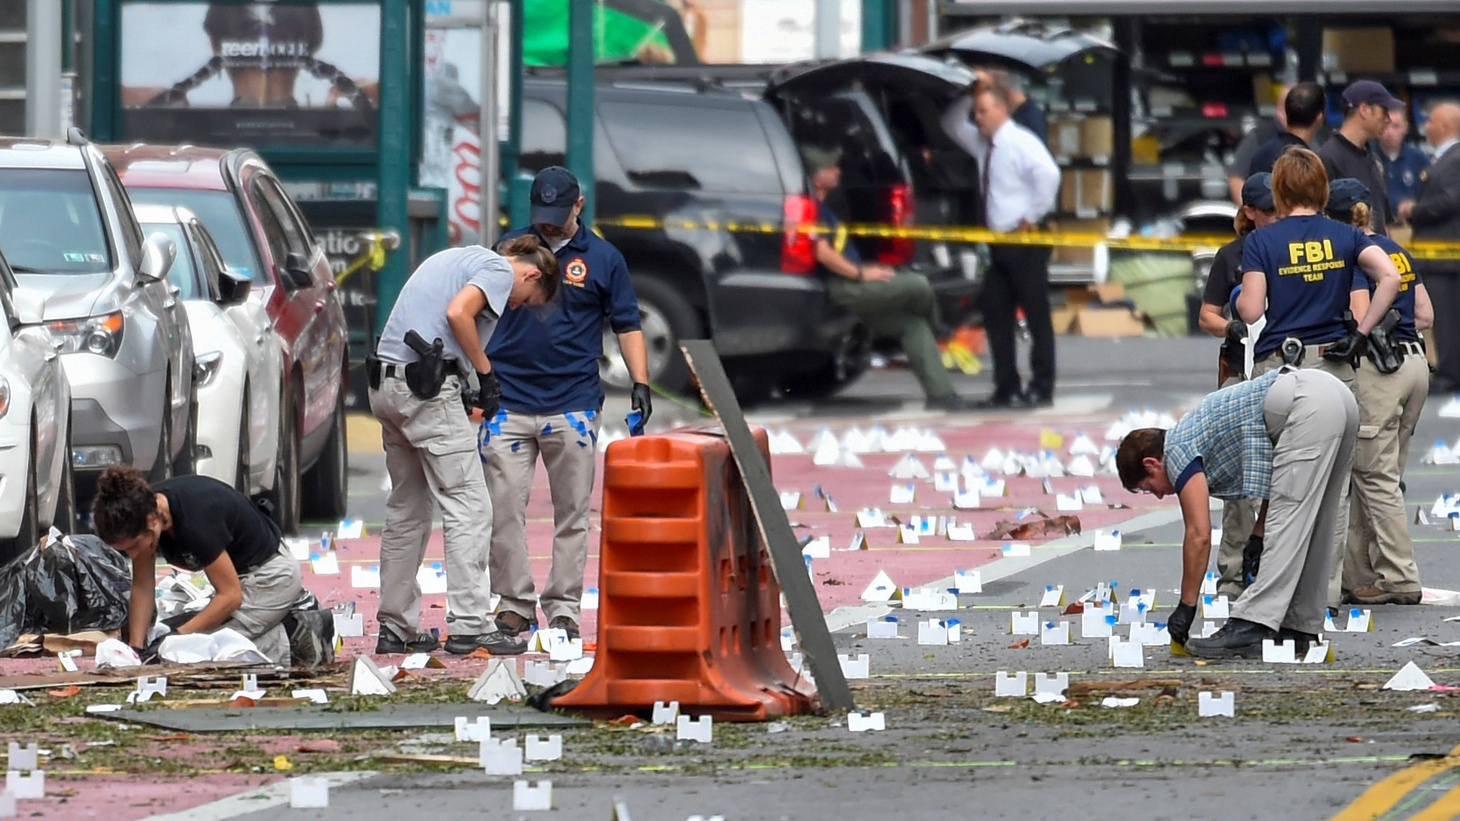 After a shootout with police, the suspect connected with bombings in the New York area this weekend has been captured. What do we know about Ahmed Kahn Rahami?